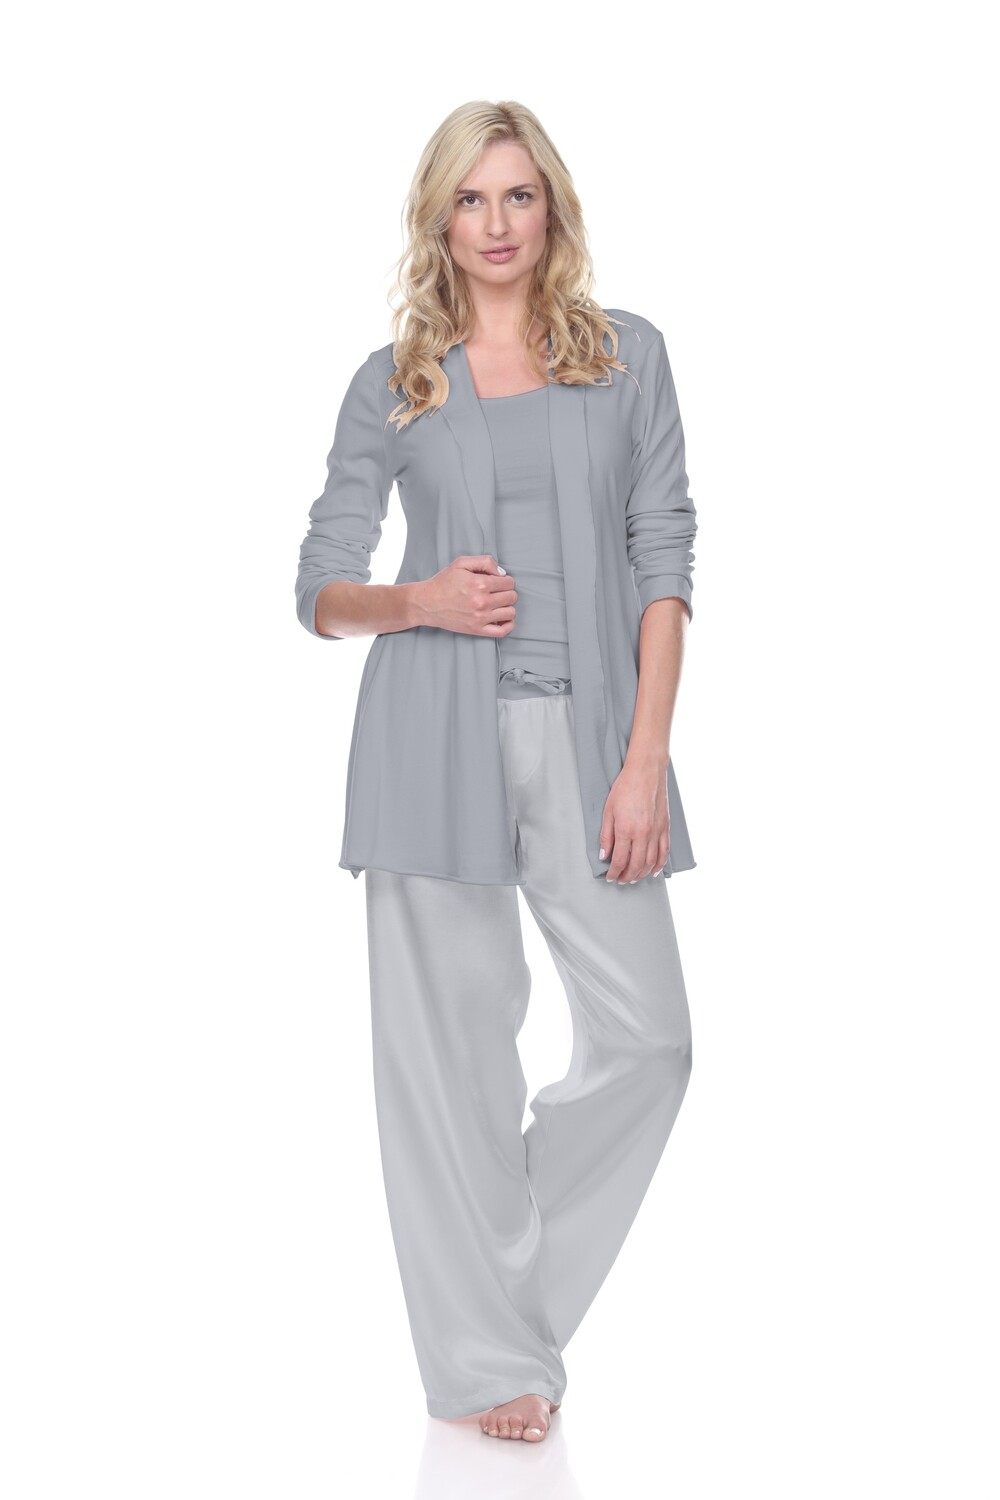 PJ Harlow Amelia Women's Cardigan Lounge Jacket- silver grey - phasing out color